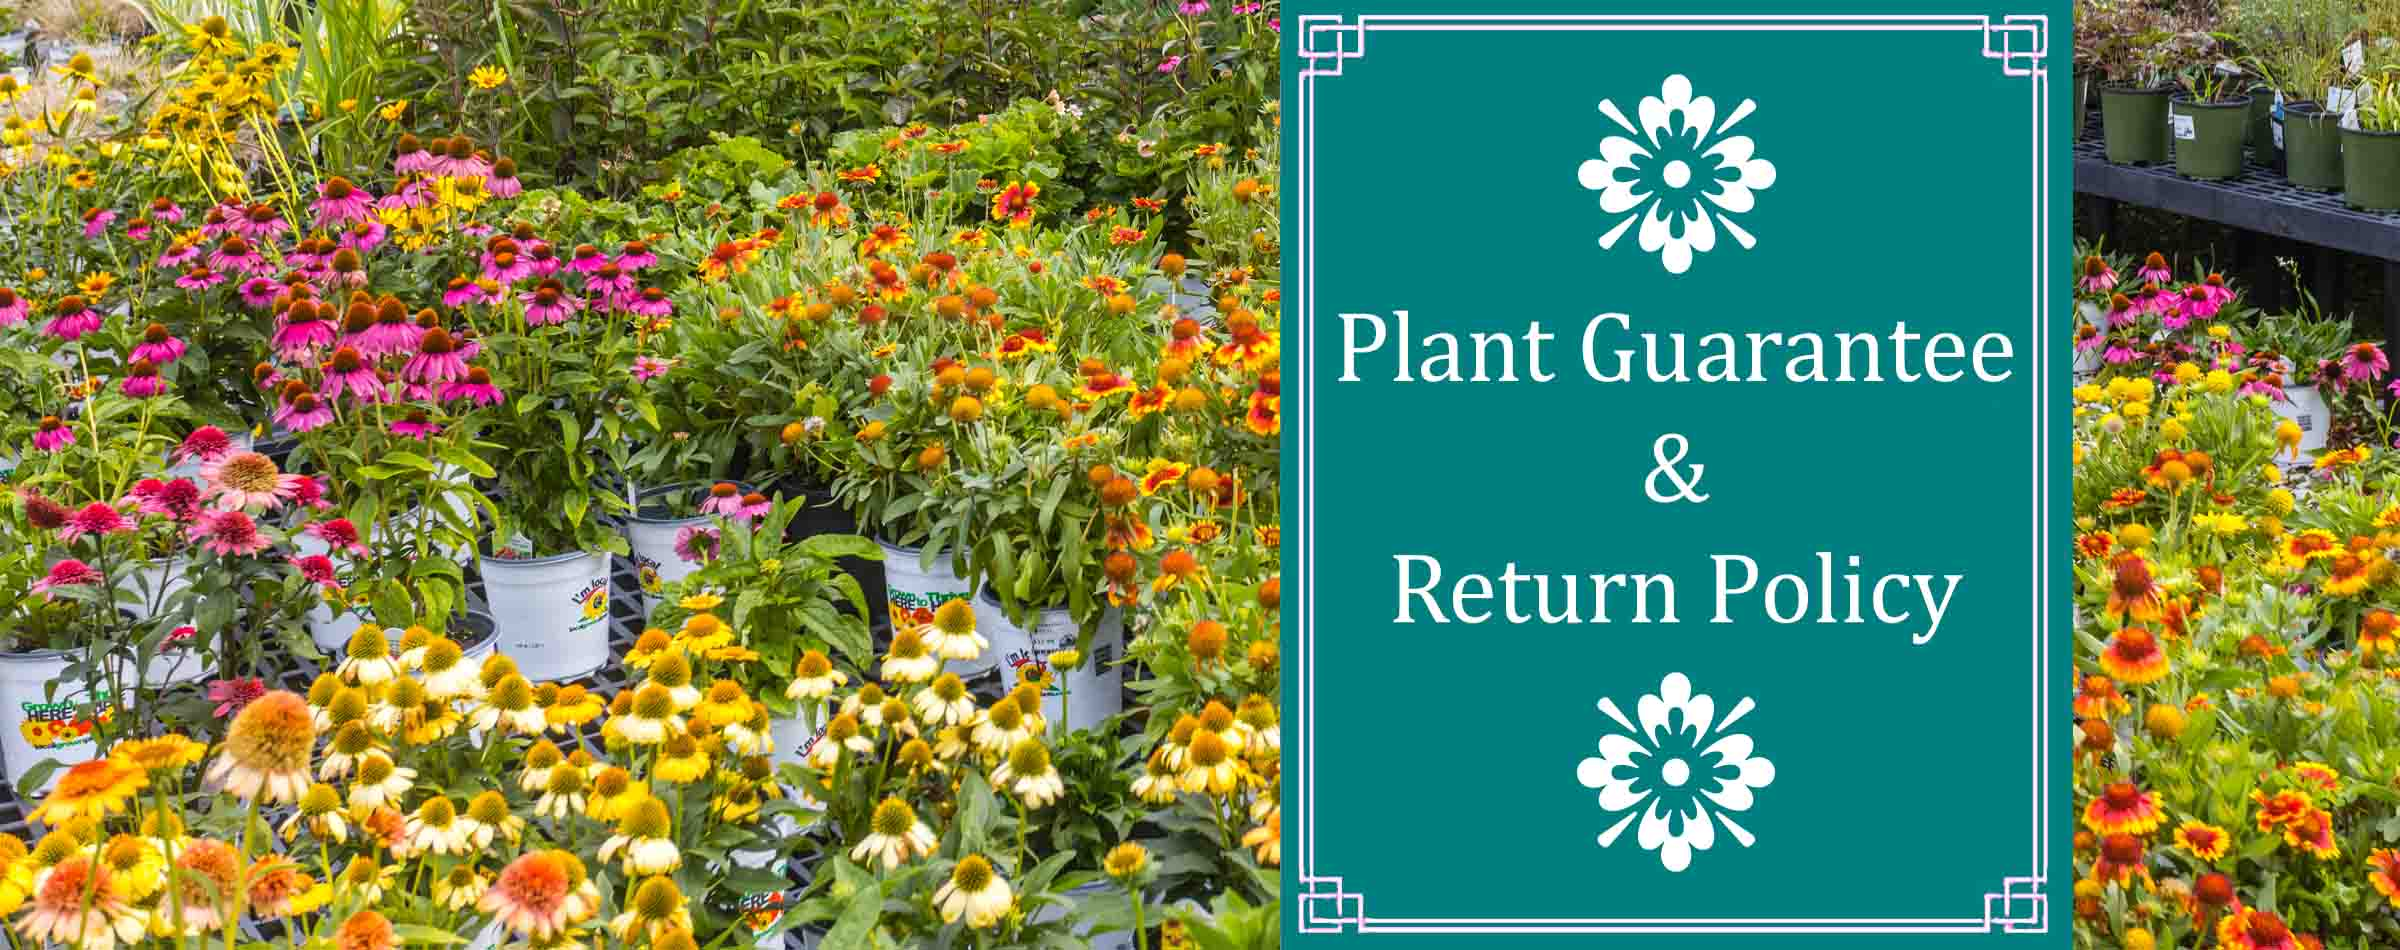 Plant Guarantee and Return Policy